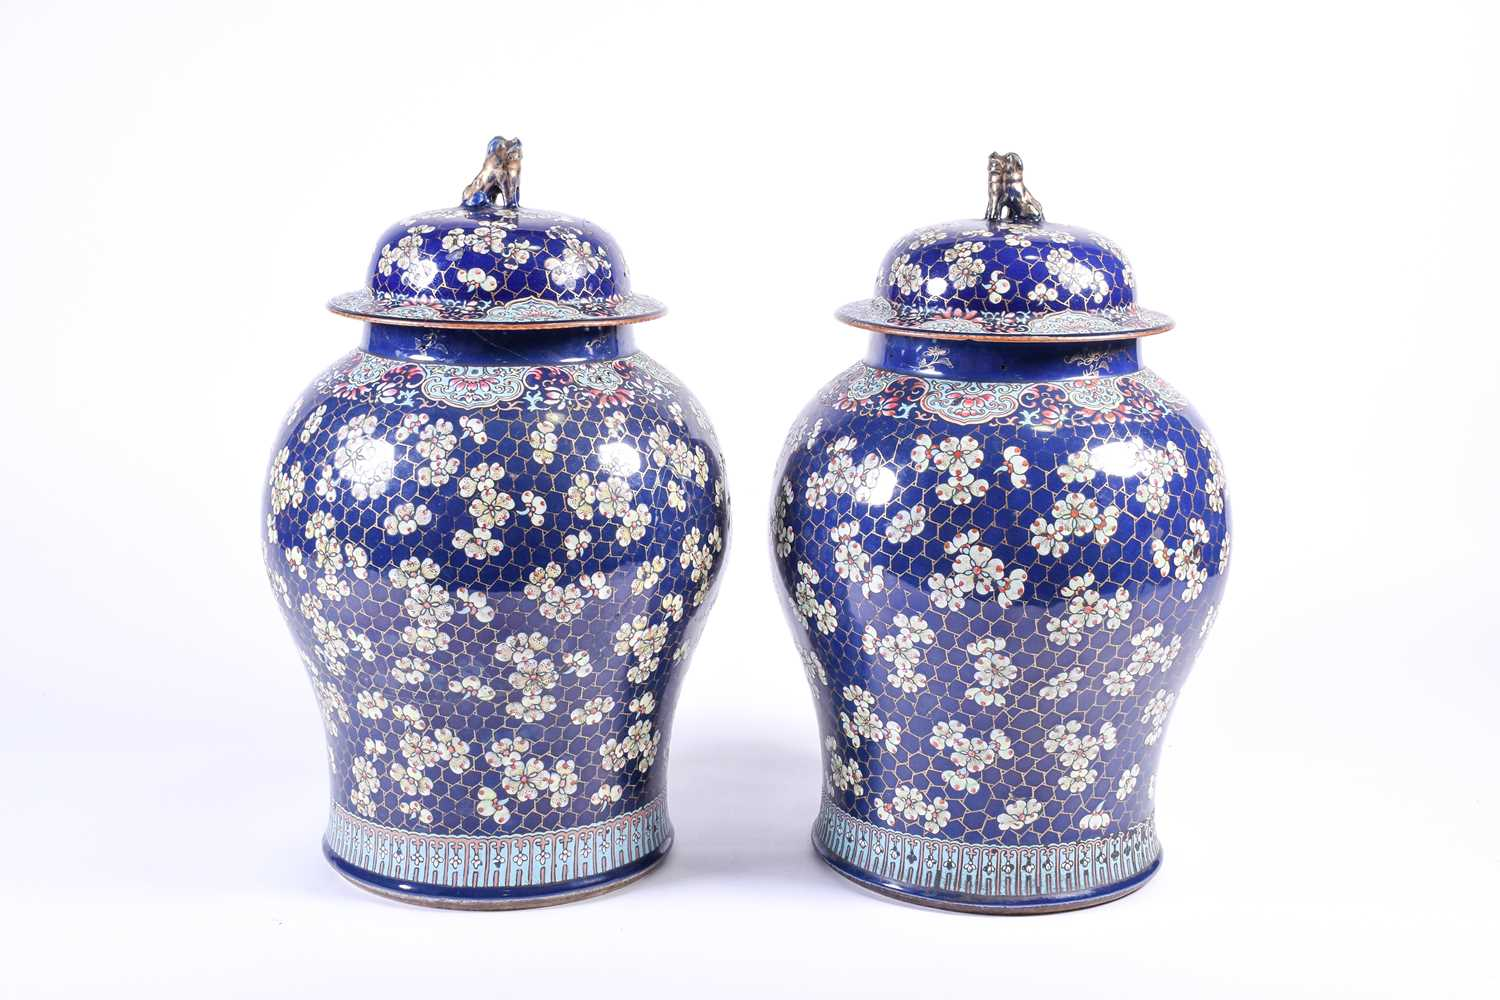 A pair of large Chinese porcelain vases and covers, Qing, 18th century Canton South East Asian Fo dog finials blossoming prunus ruyi heads Famille Rose gilt cracked ice and powder blue ground